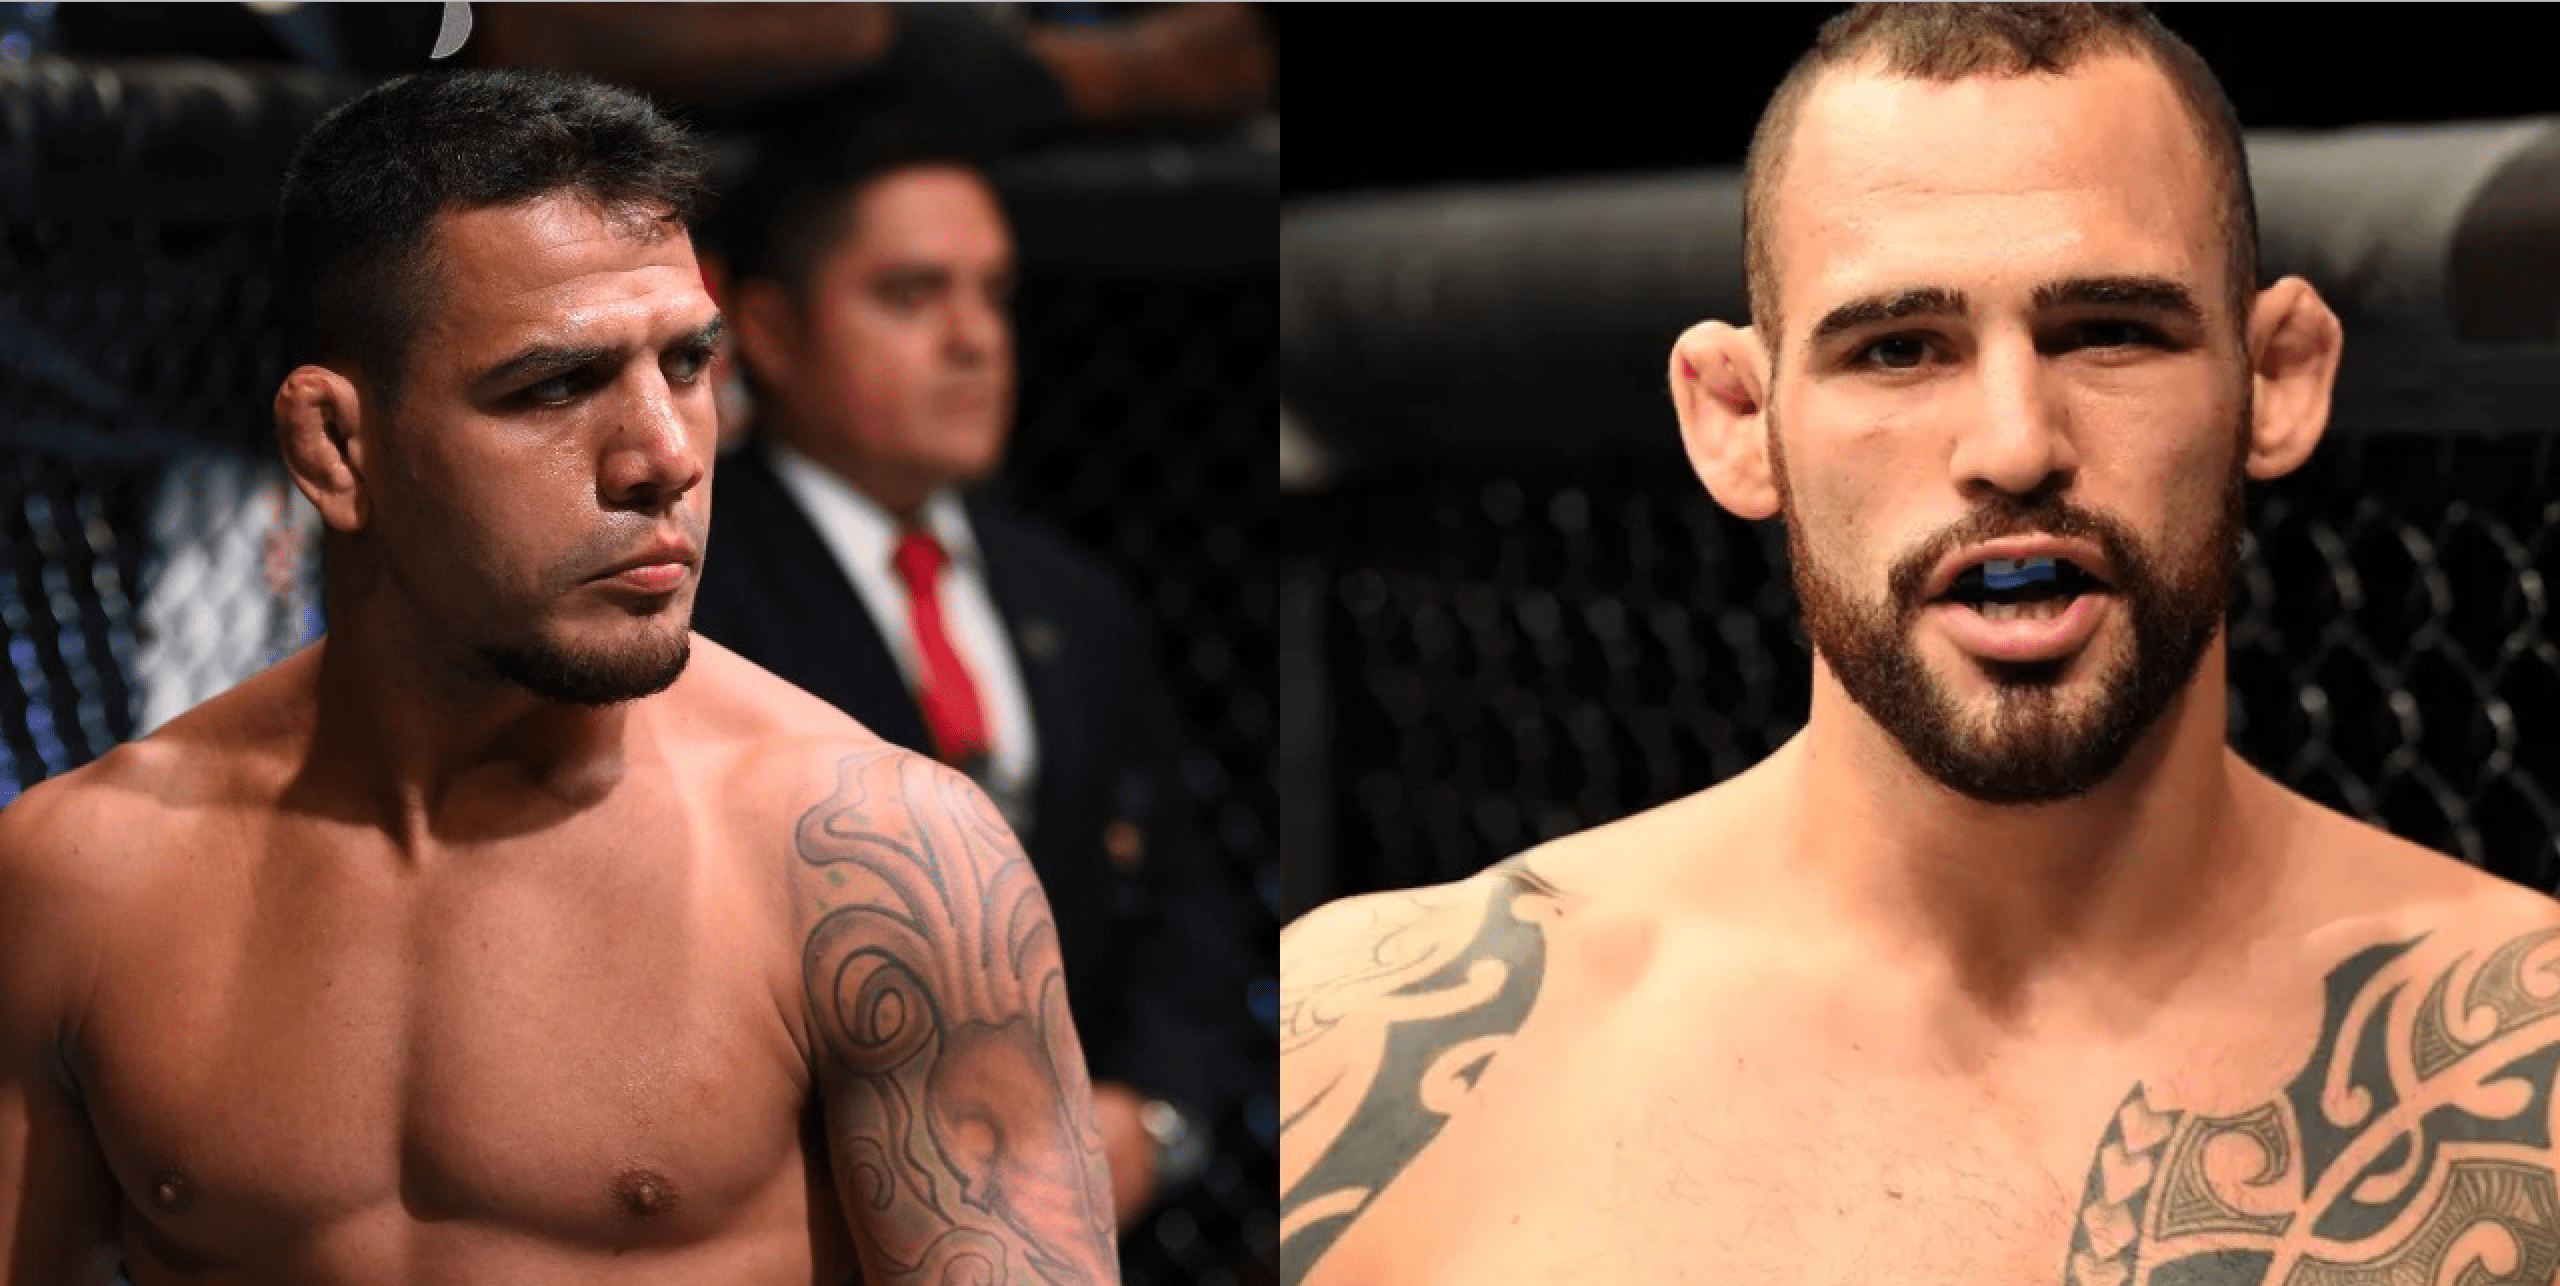 Report: Santiago Ponzinibbio Formally Asks UFC For Fight Against Rafael dos Anjos